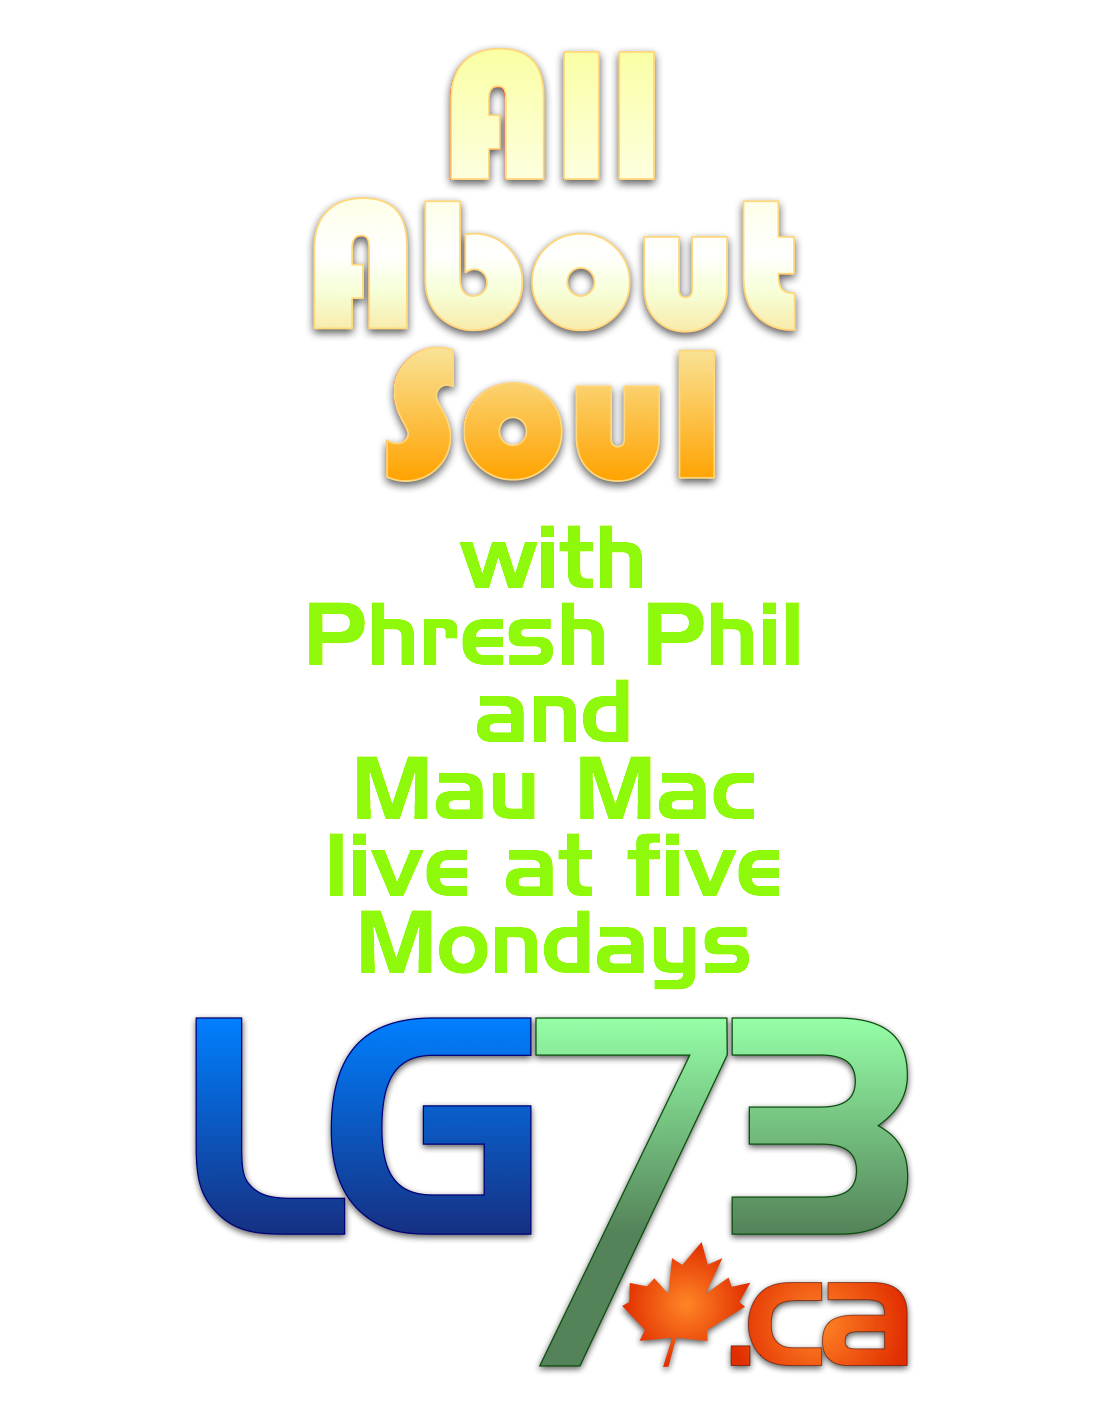 All About Soul Live Saturdays 10 am on LG73